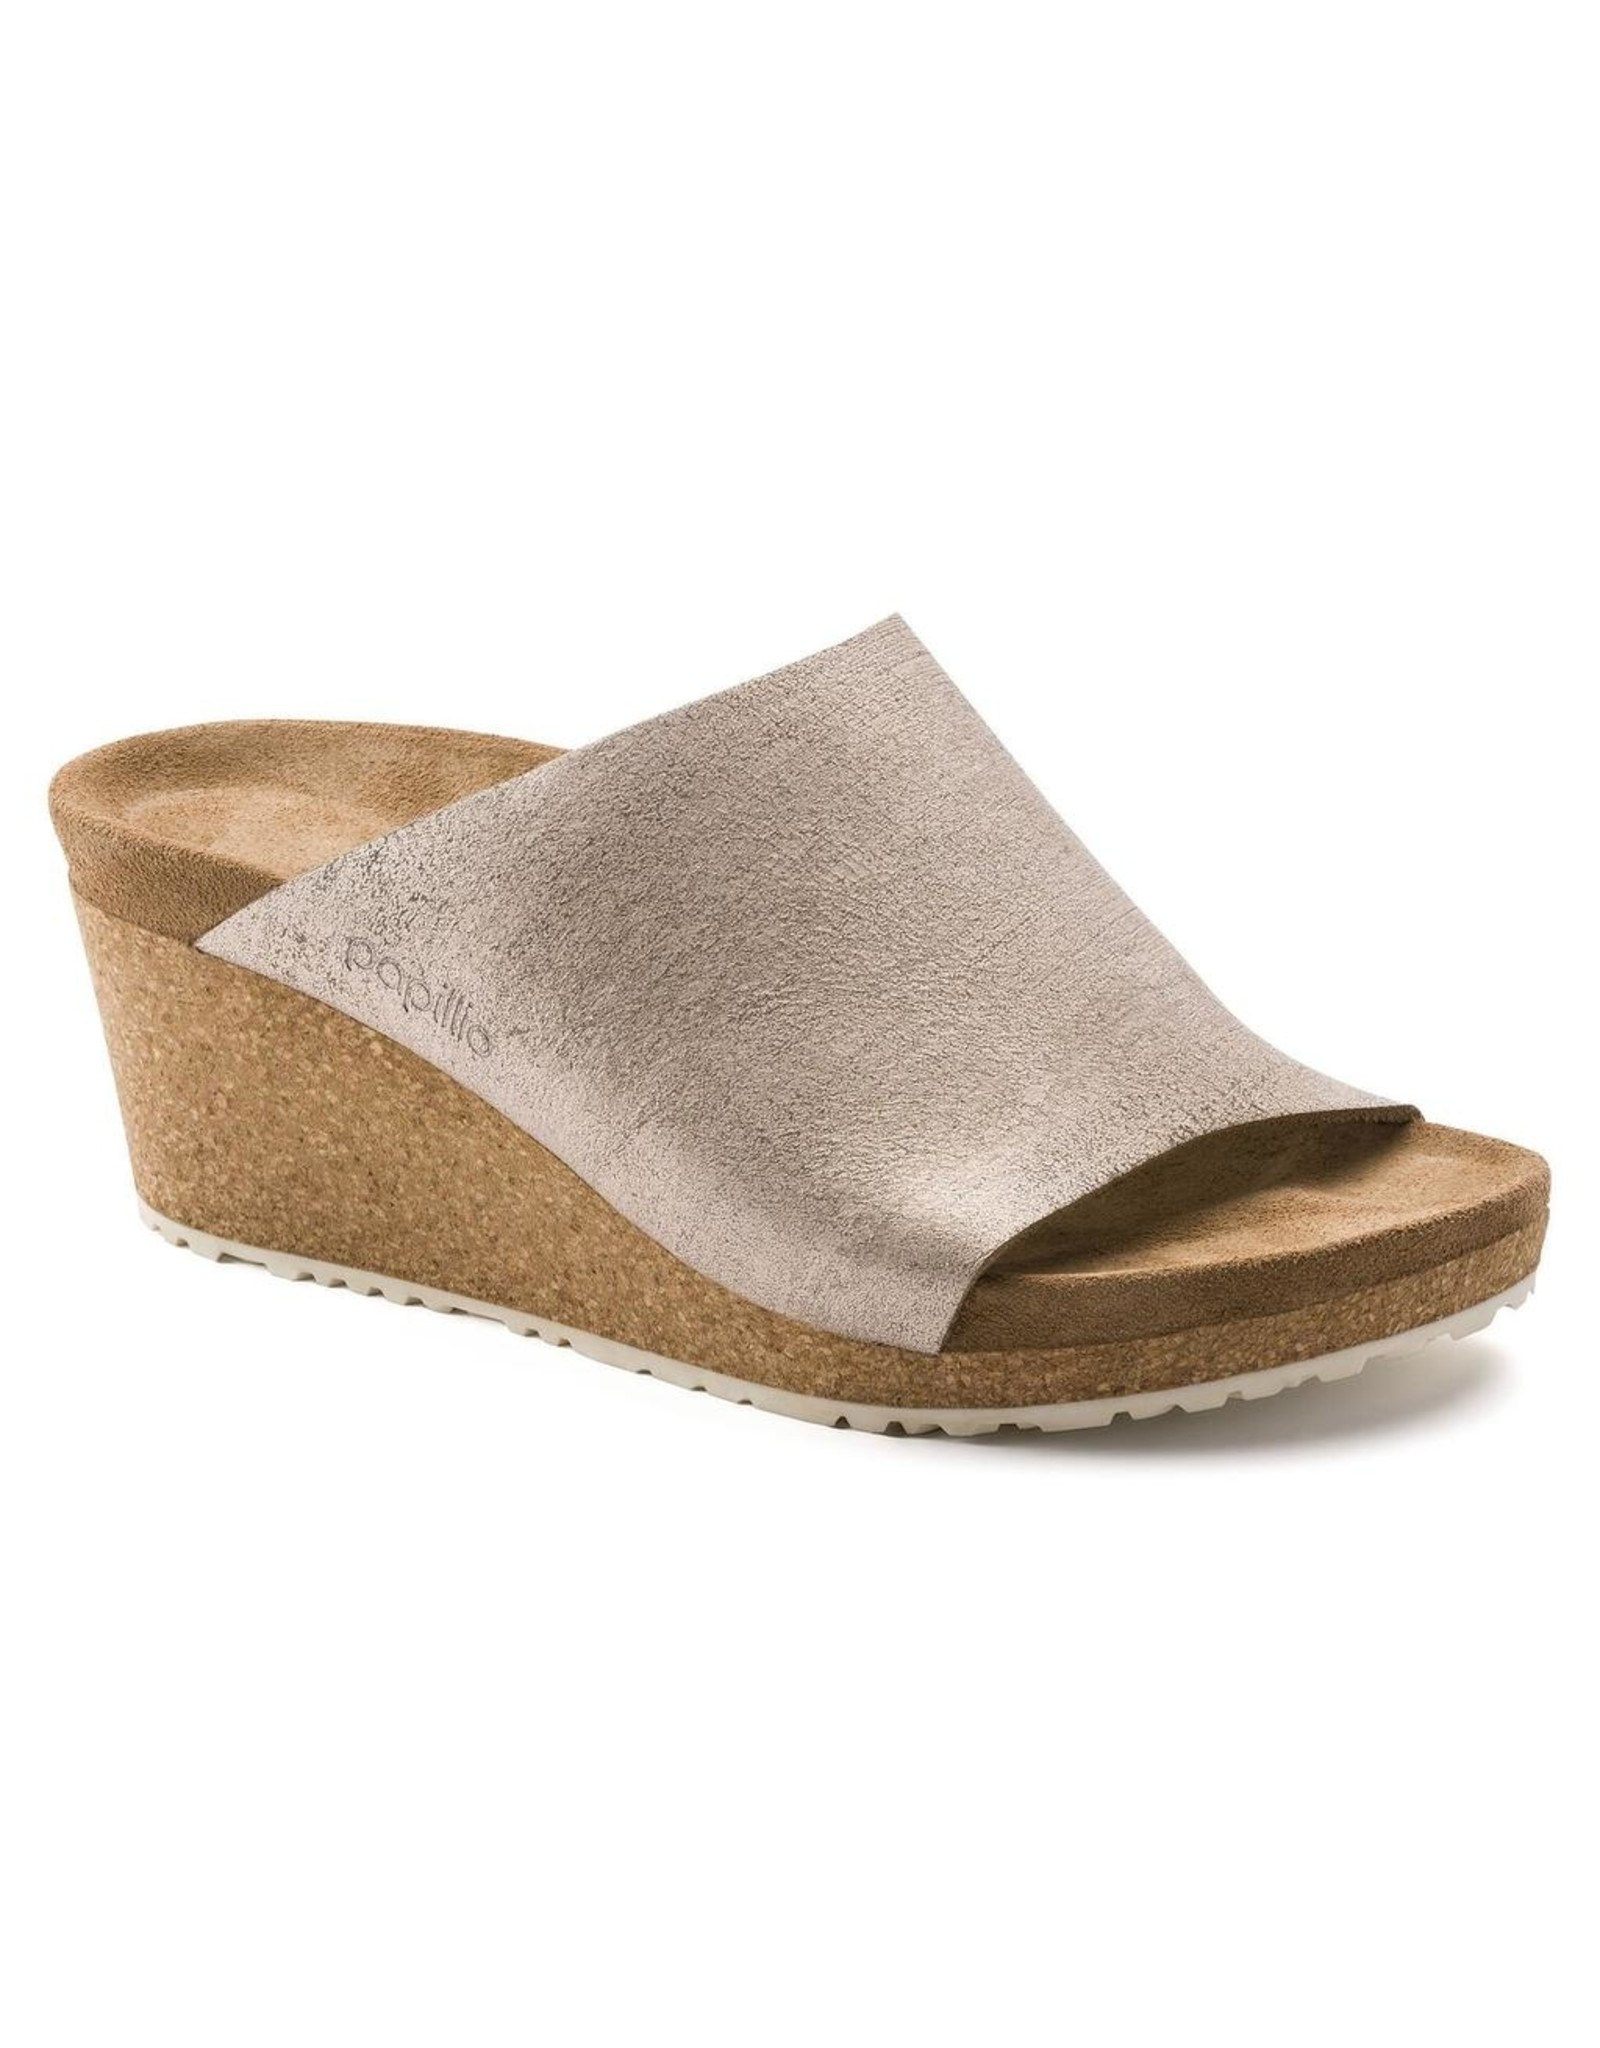 Birkenstock Namica Suede Leather Slid Wedge Sandal